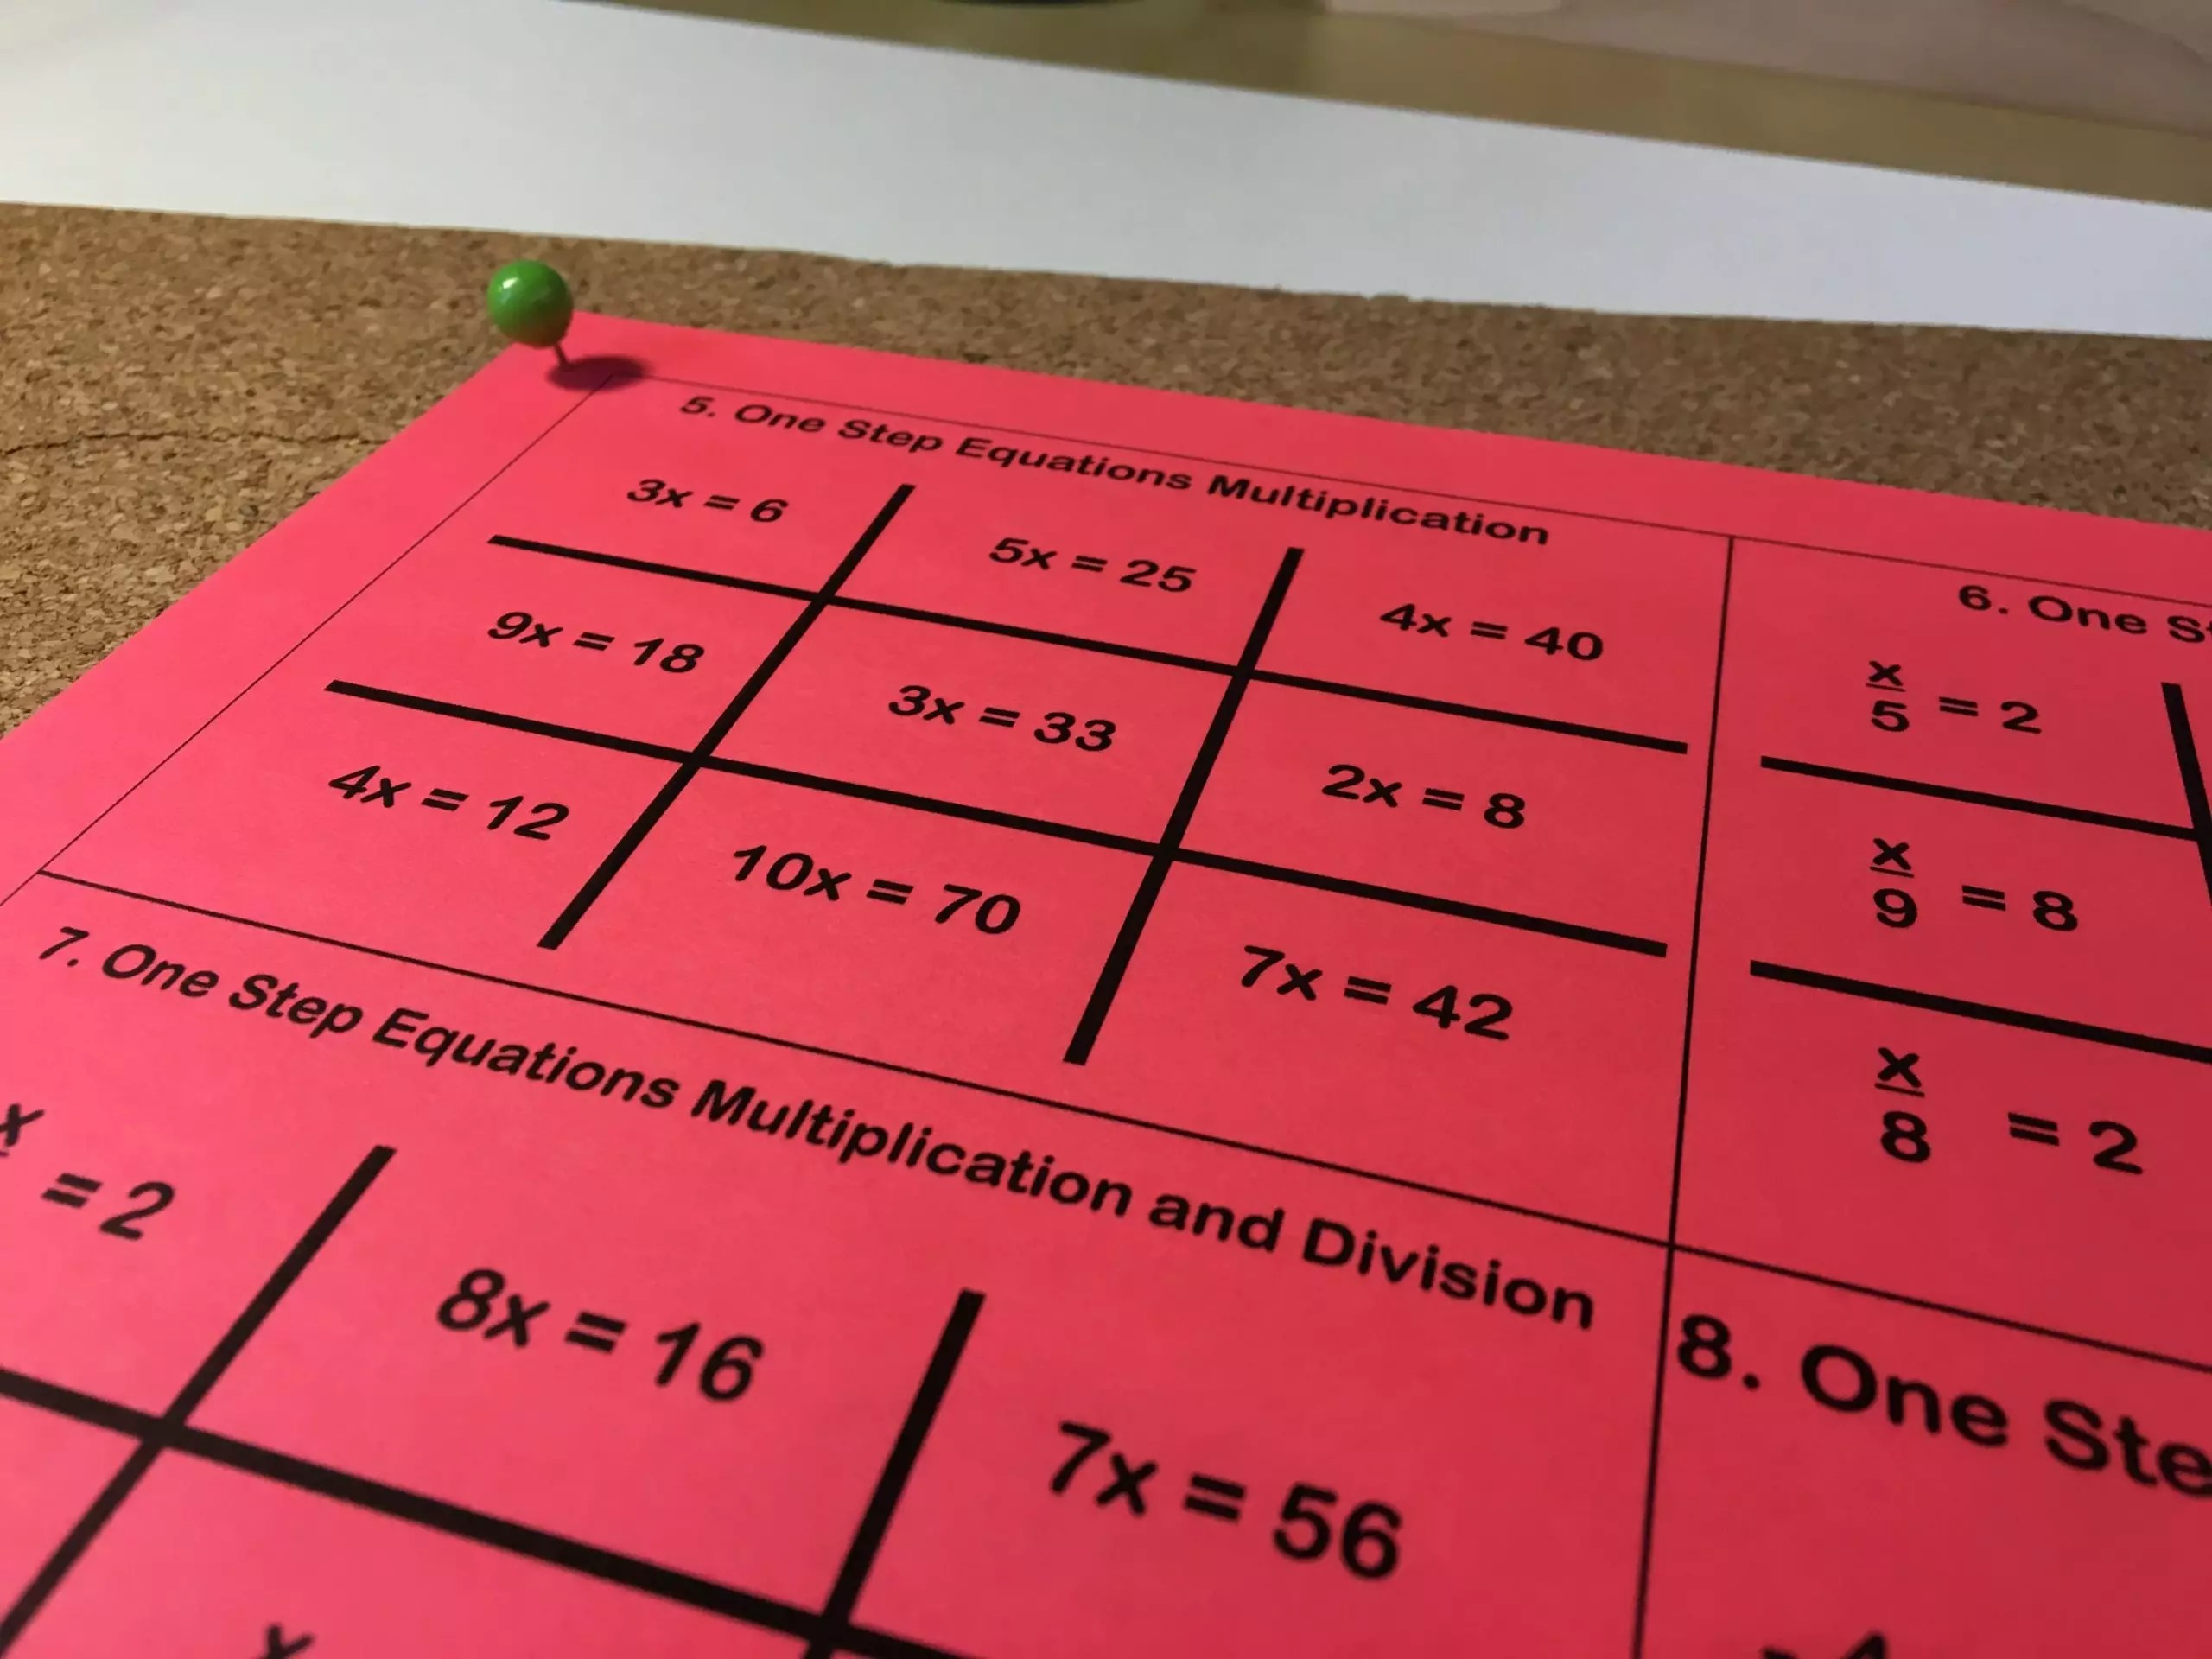 12 One Step Equation Activities That Are Out of this World ...